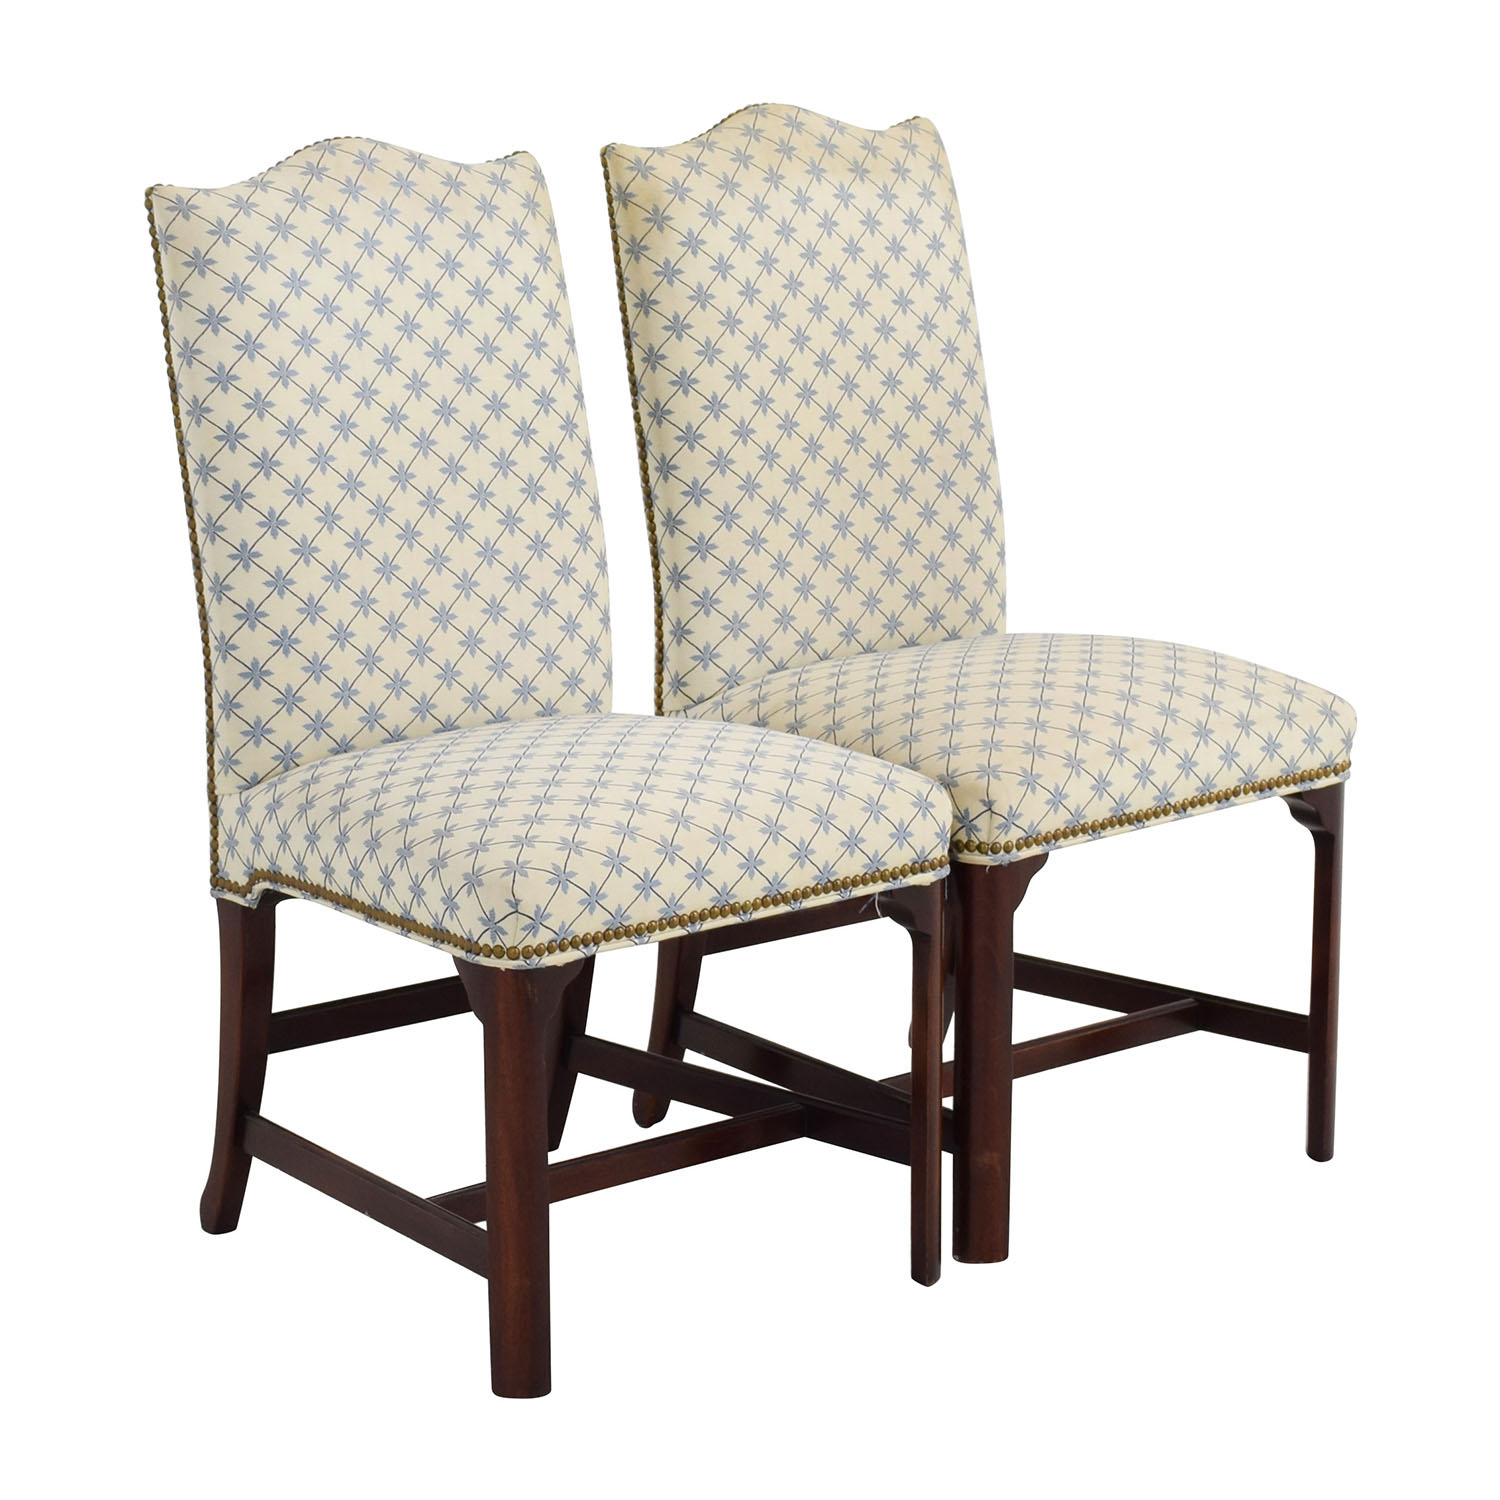 88% OFF Hickory Chair Hickory Chair Bespoke Upholstered